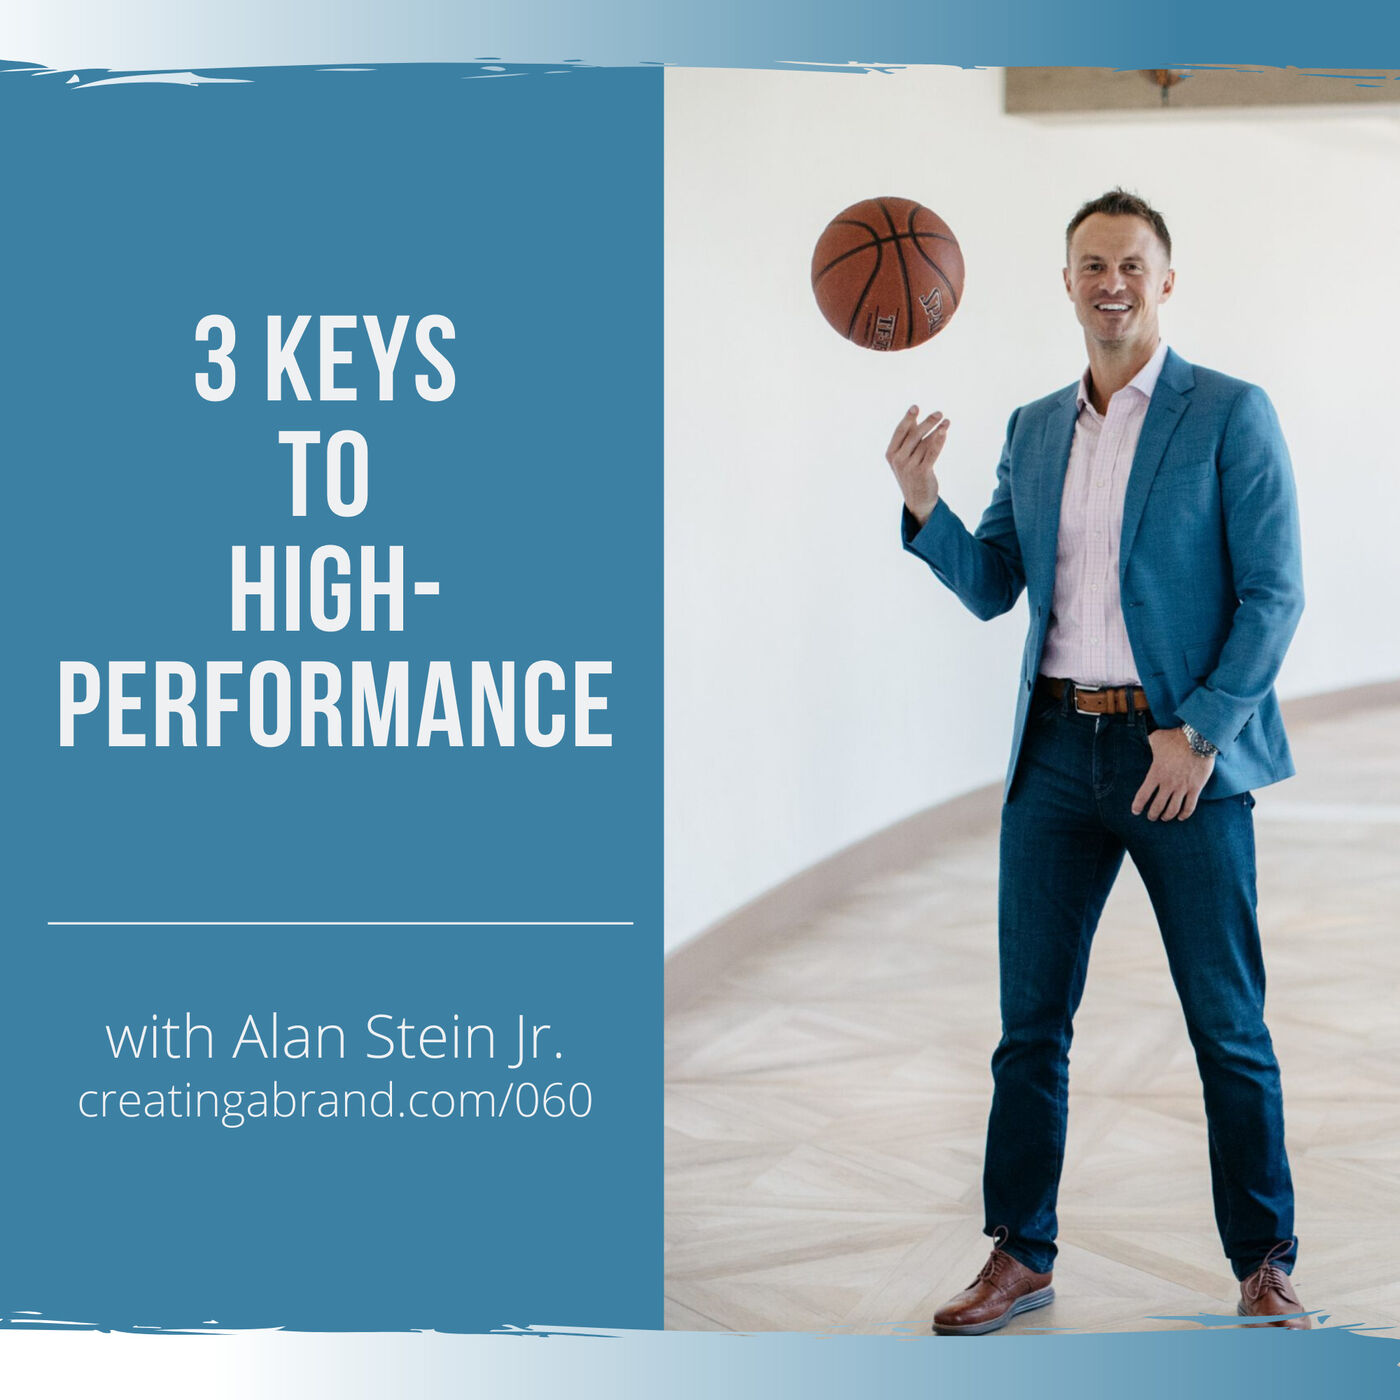 3 Keys to High-Performance with Alan Stein Jr.